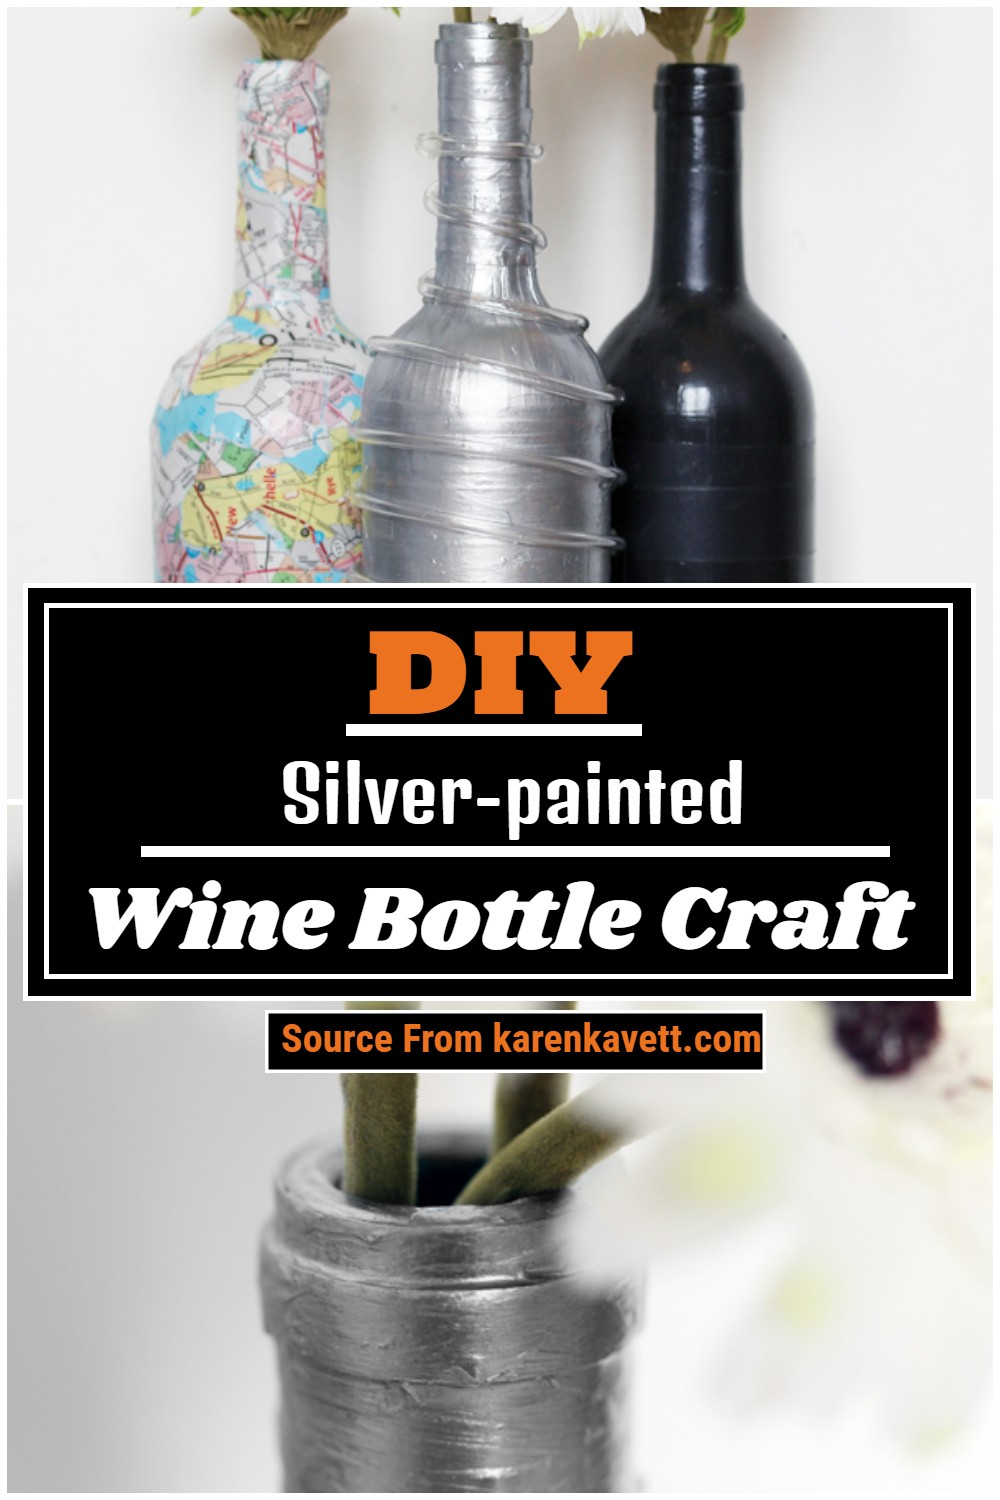 DIY Silver-painted Wine Bottle Craft